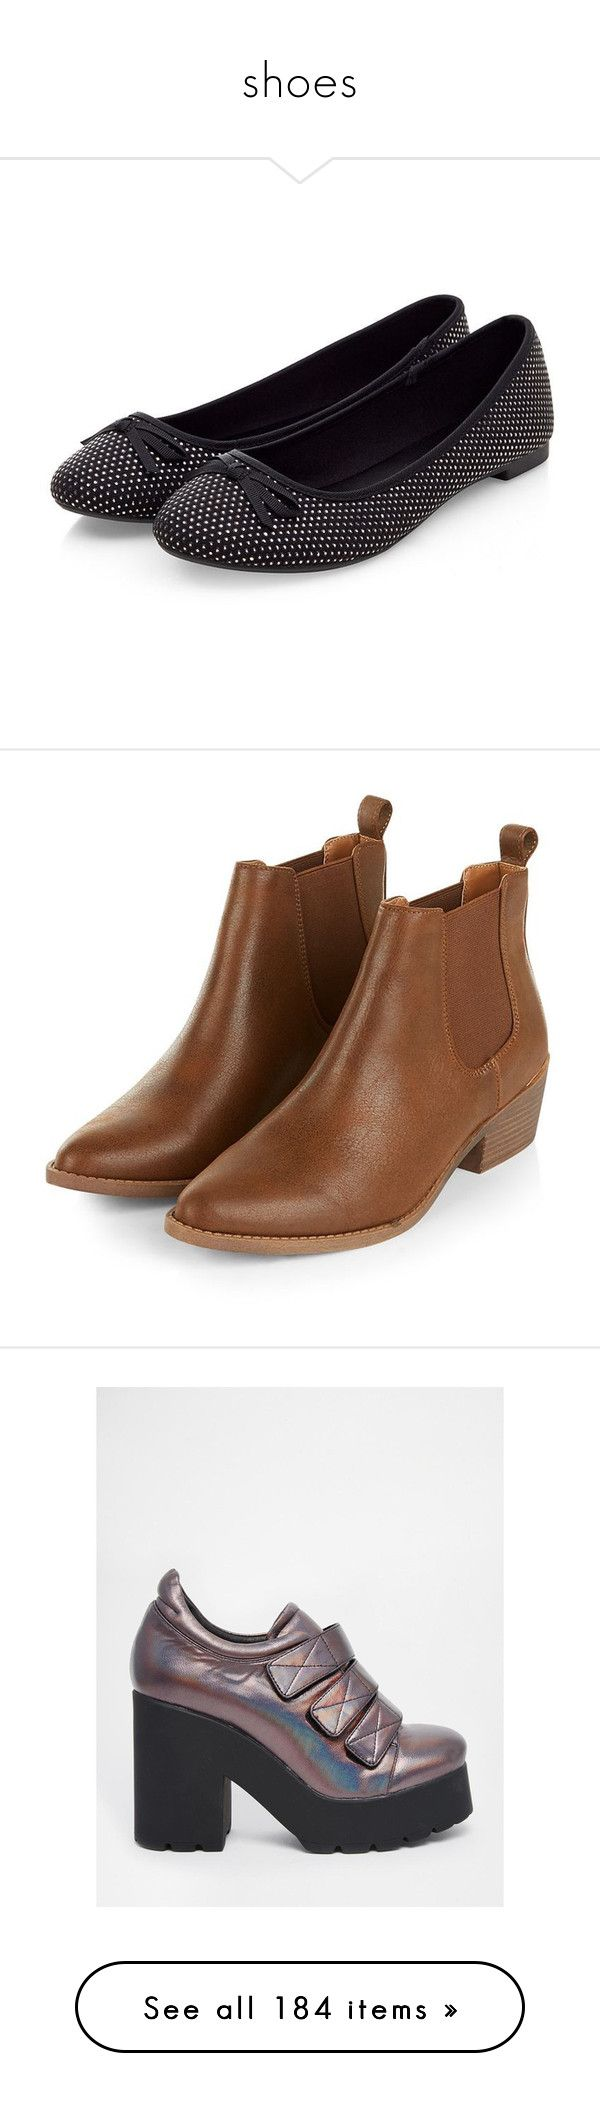 """shoes"" by alexandra-barbu-1 ❤ liked on Polyvore featuring shoes, flat sole shoes, ballet pumps, skimmer shoes, ballerina shoes, ballet flat shoes, boots, ankle booties, pointed-toe chelsea boots and beatle boots"